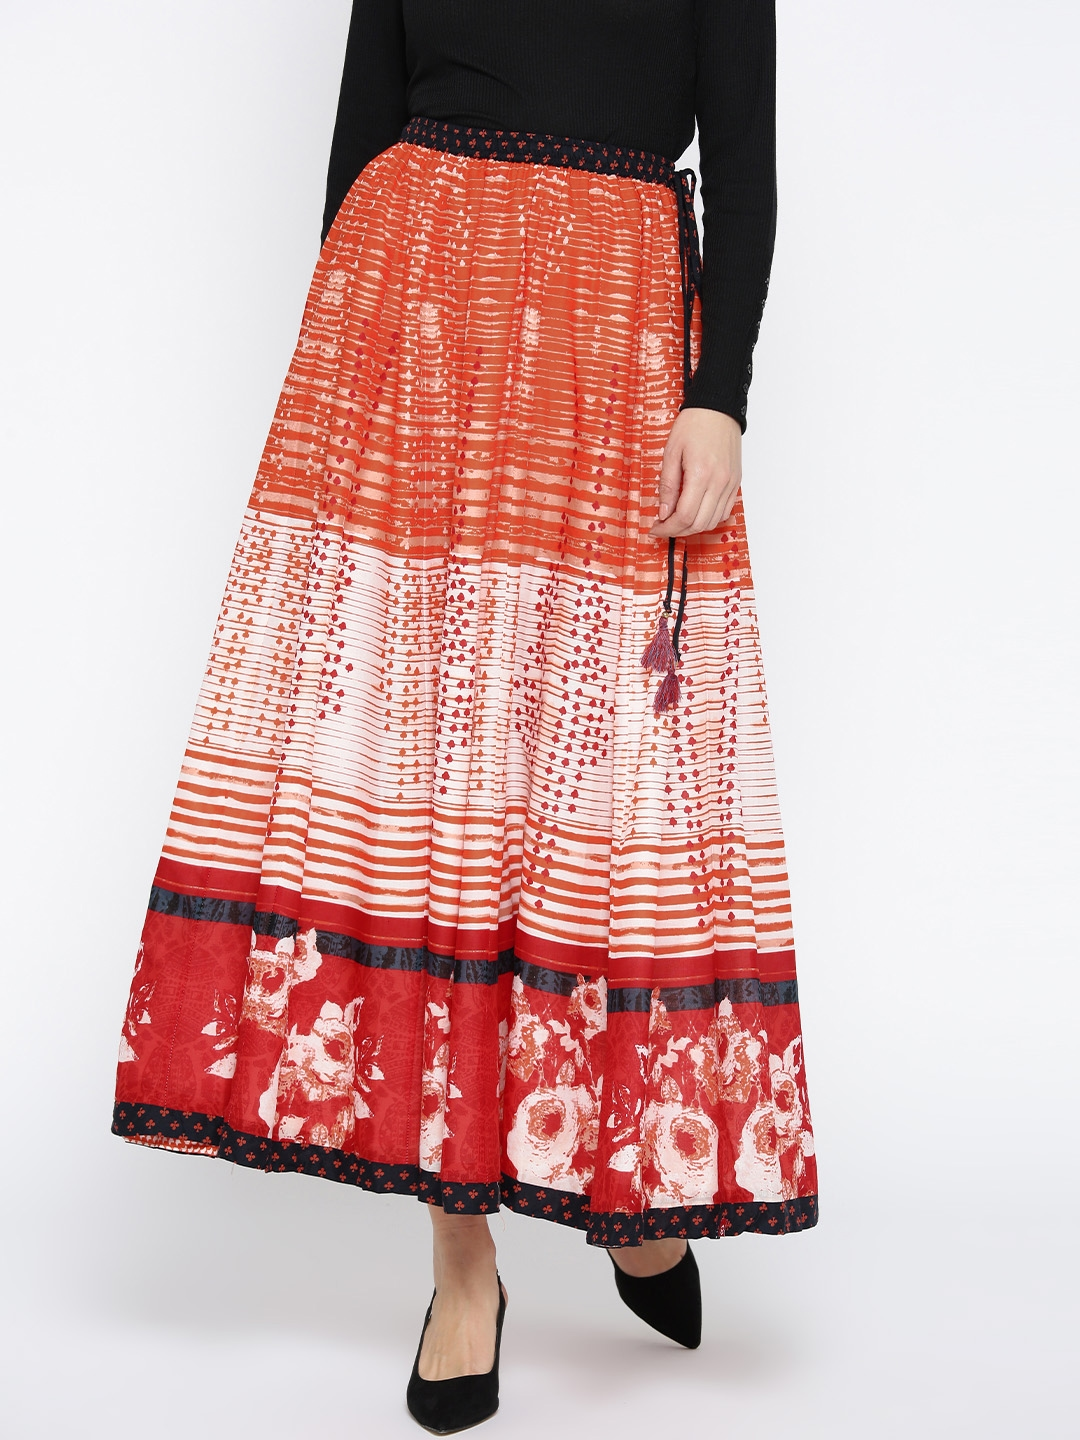 To acquire How to orange wear skirt picture trends